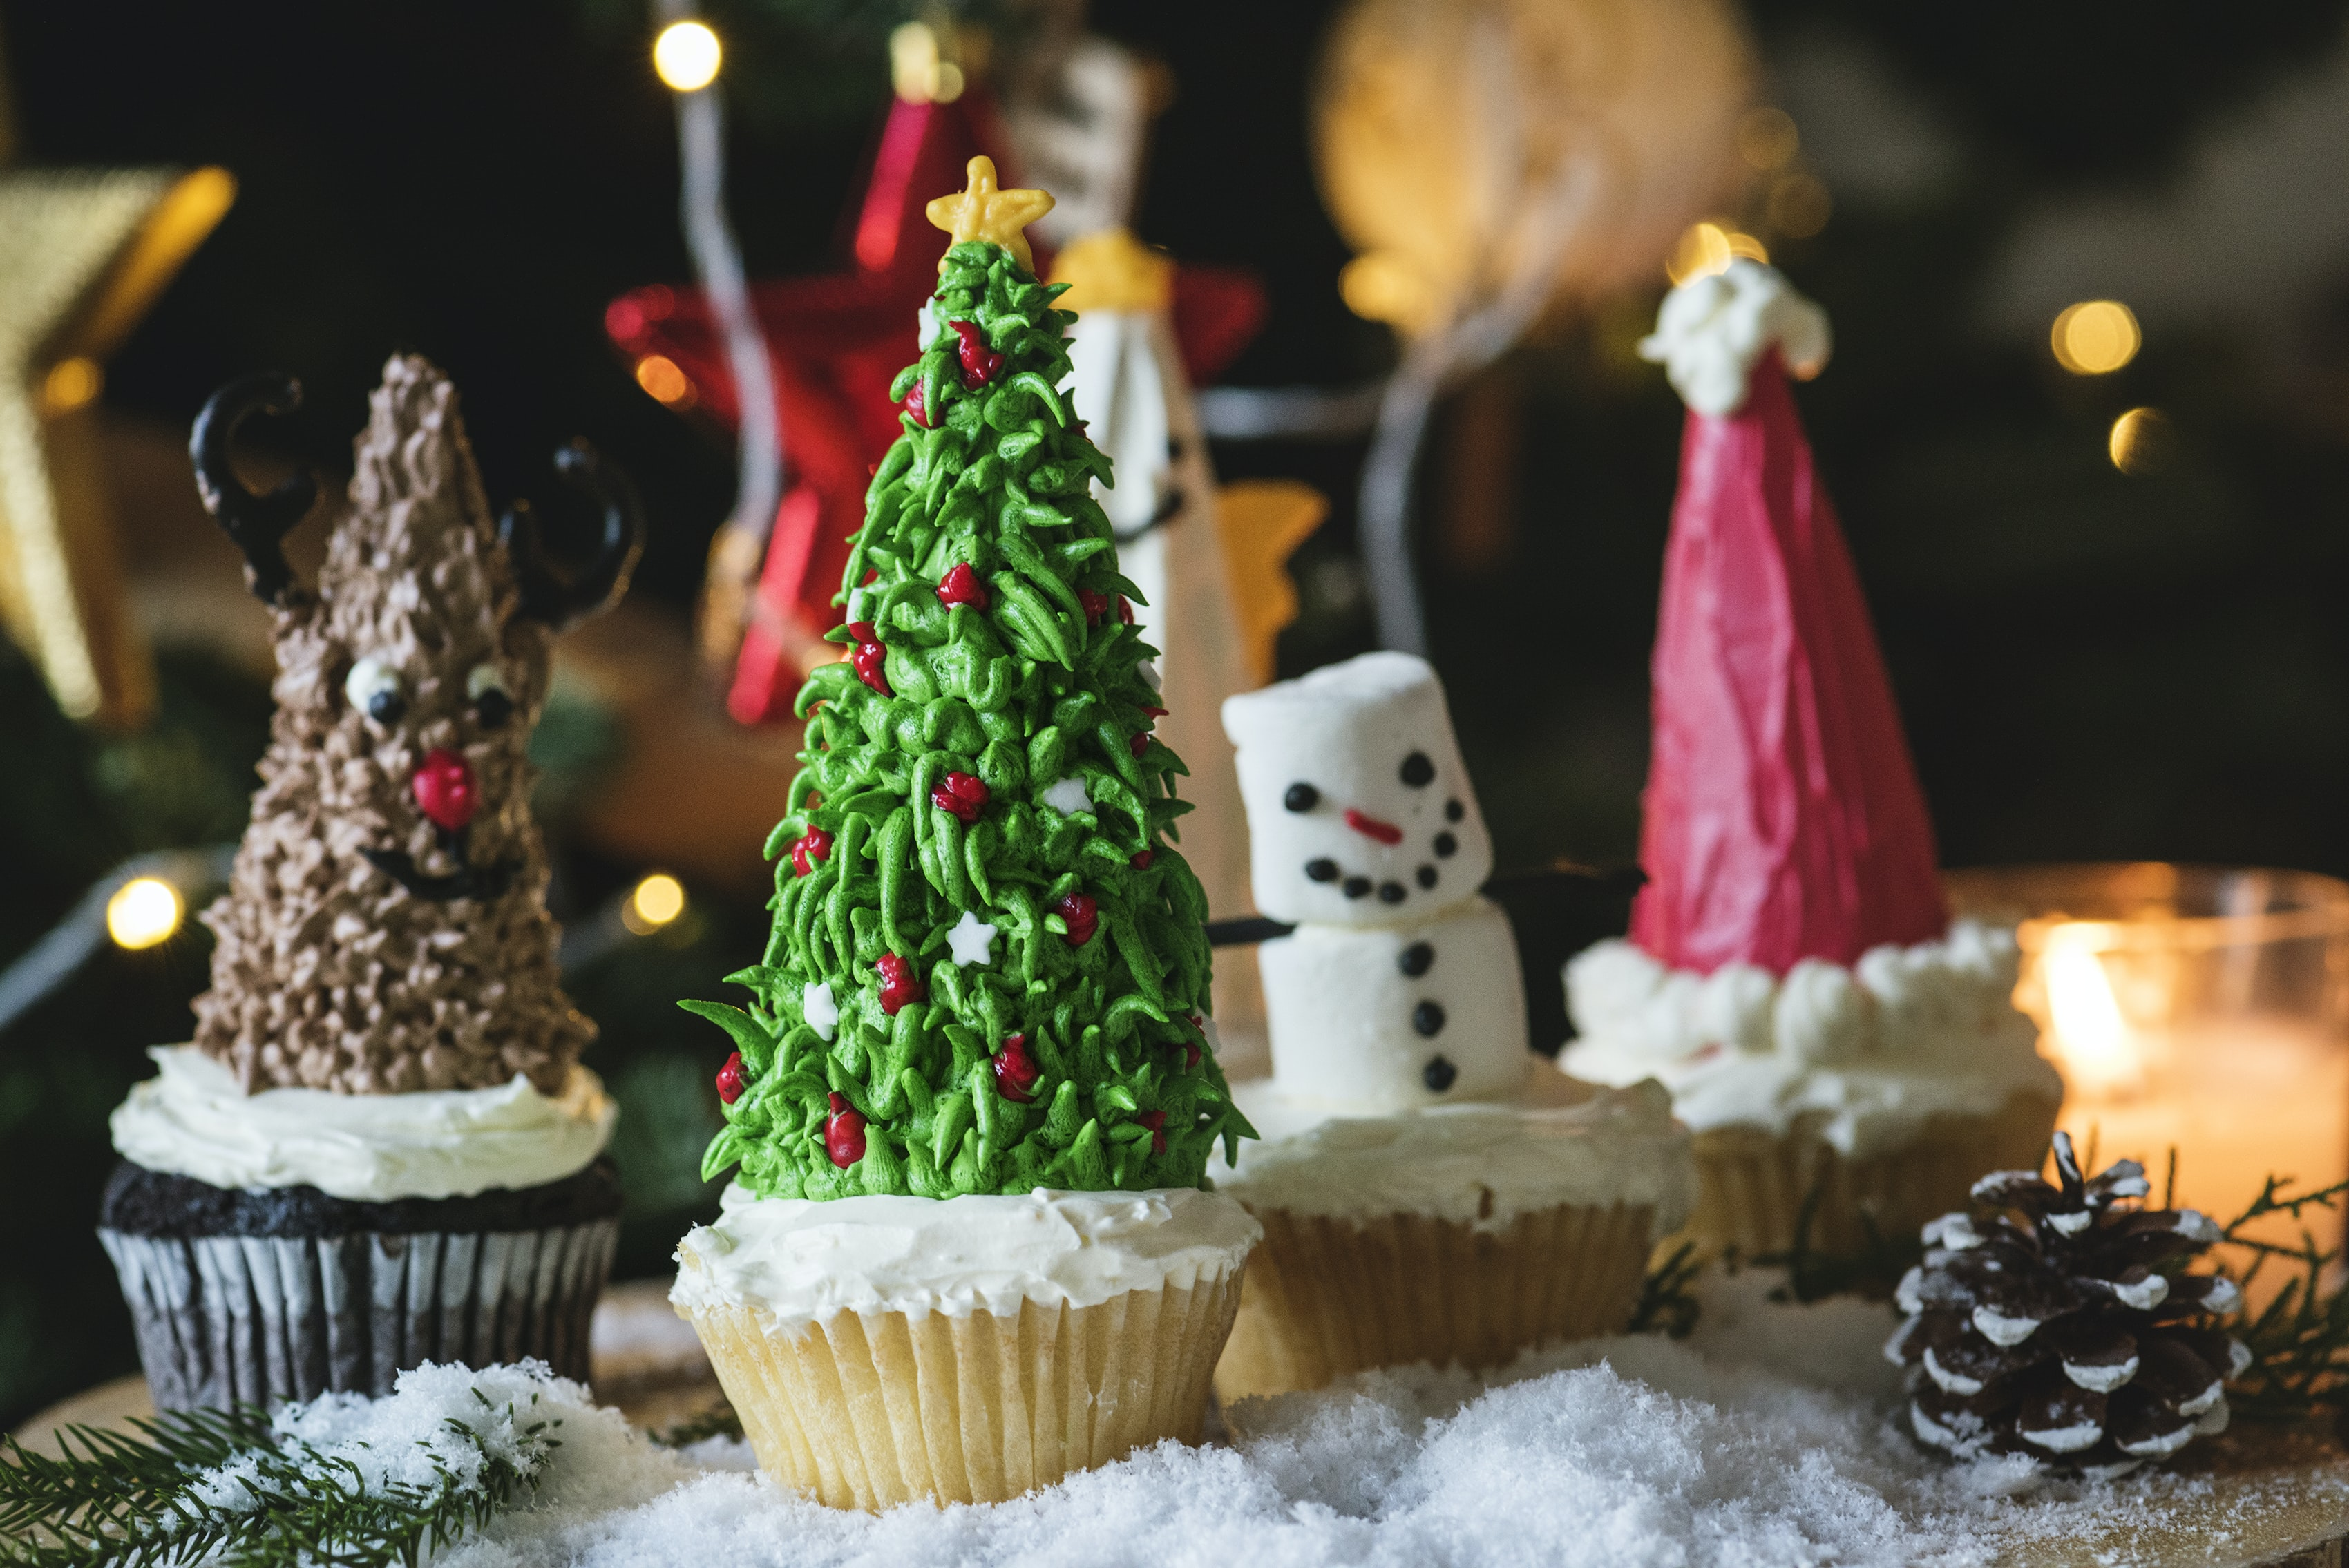 selective focus photography of Christmas-themed cupcakes